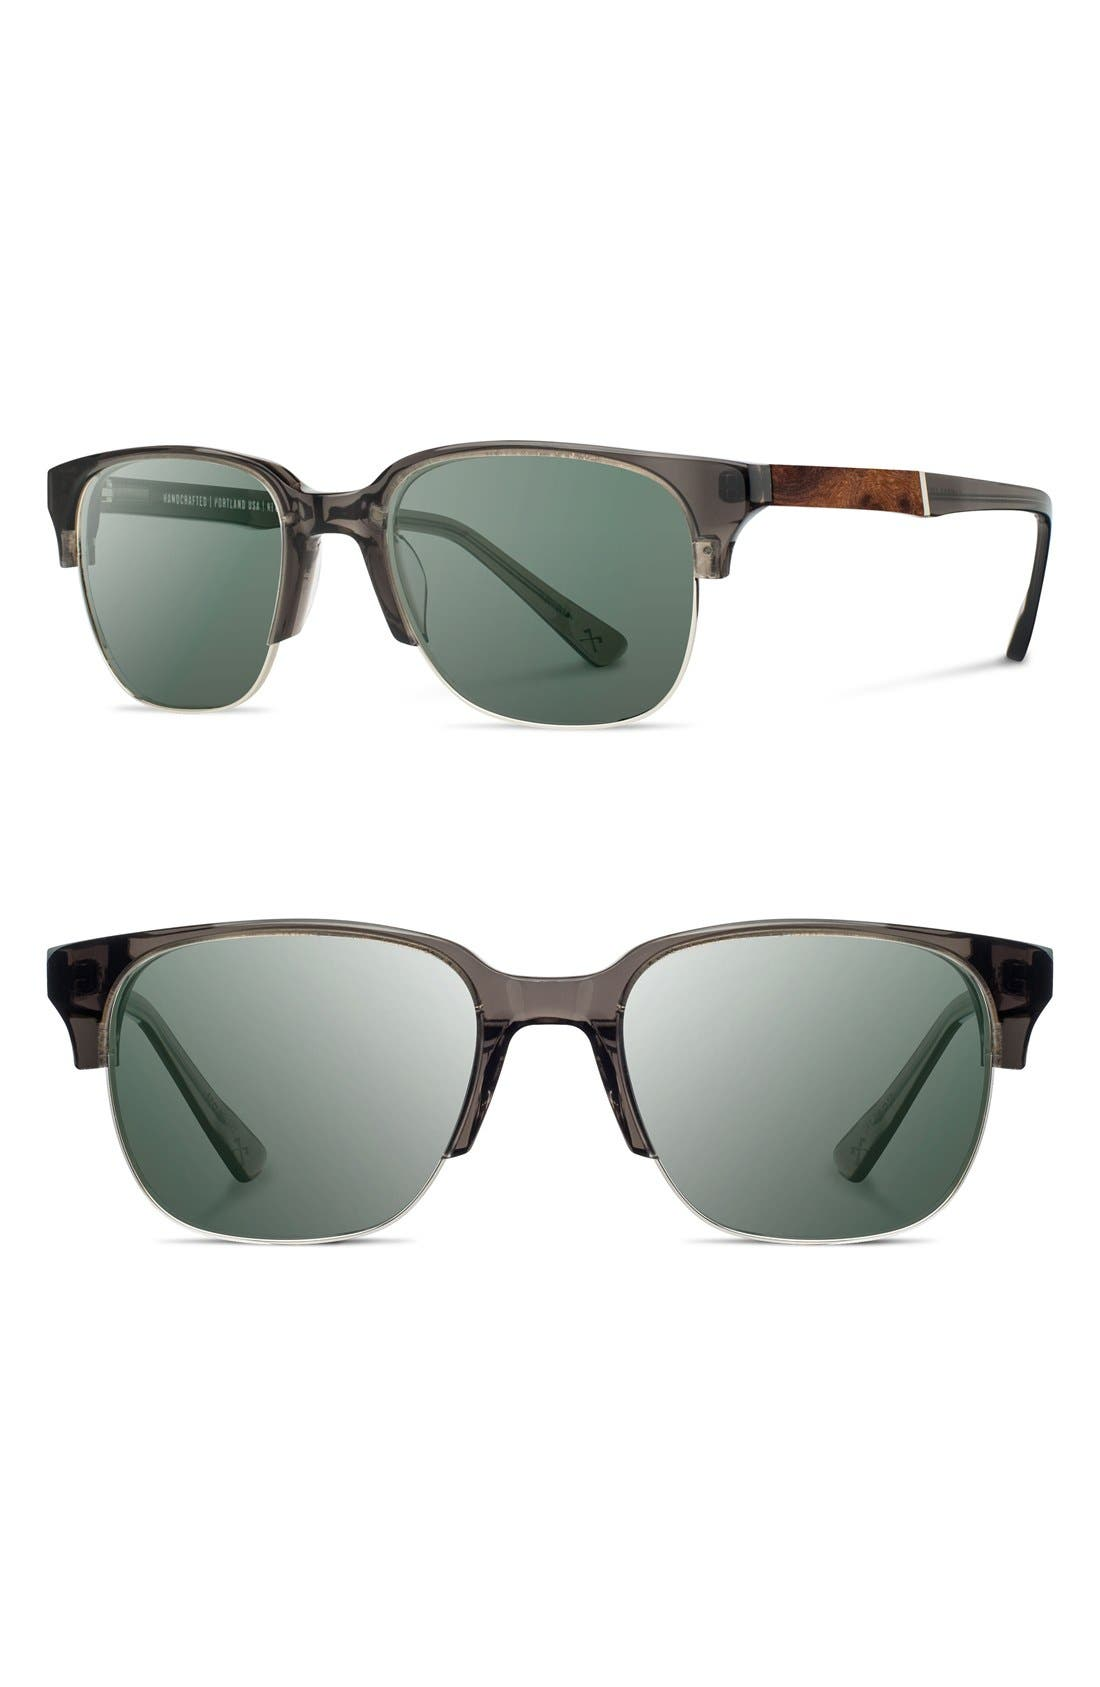 'Newport' Sunglasses,                         Main,                         color, Charcoal/ Elm Burl/ Grey